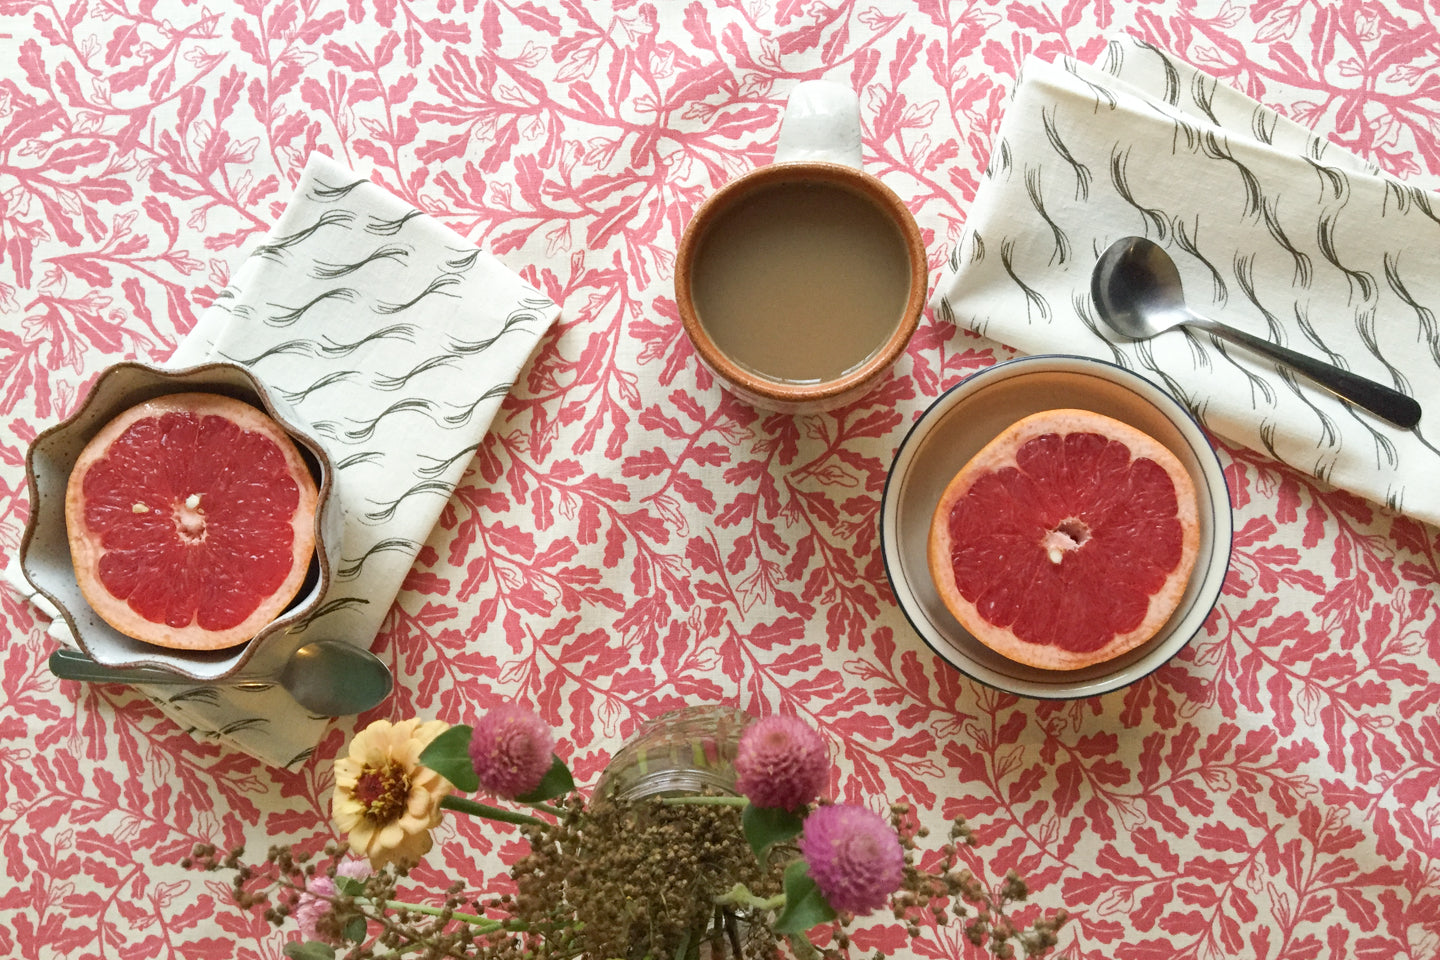 Tablescape roundup with handprinted textiles